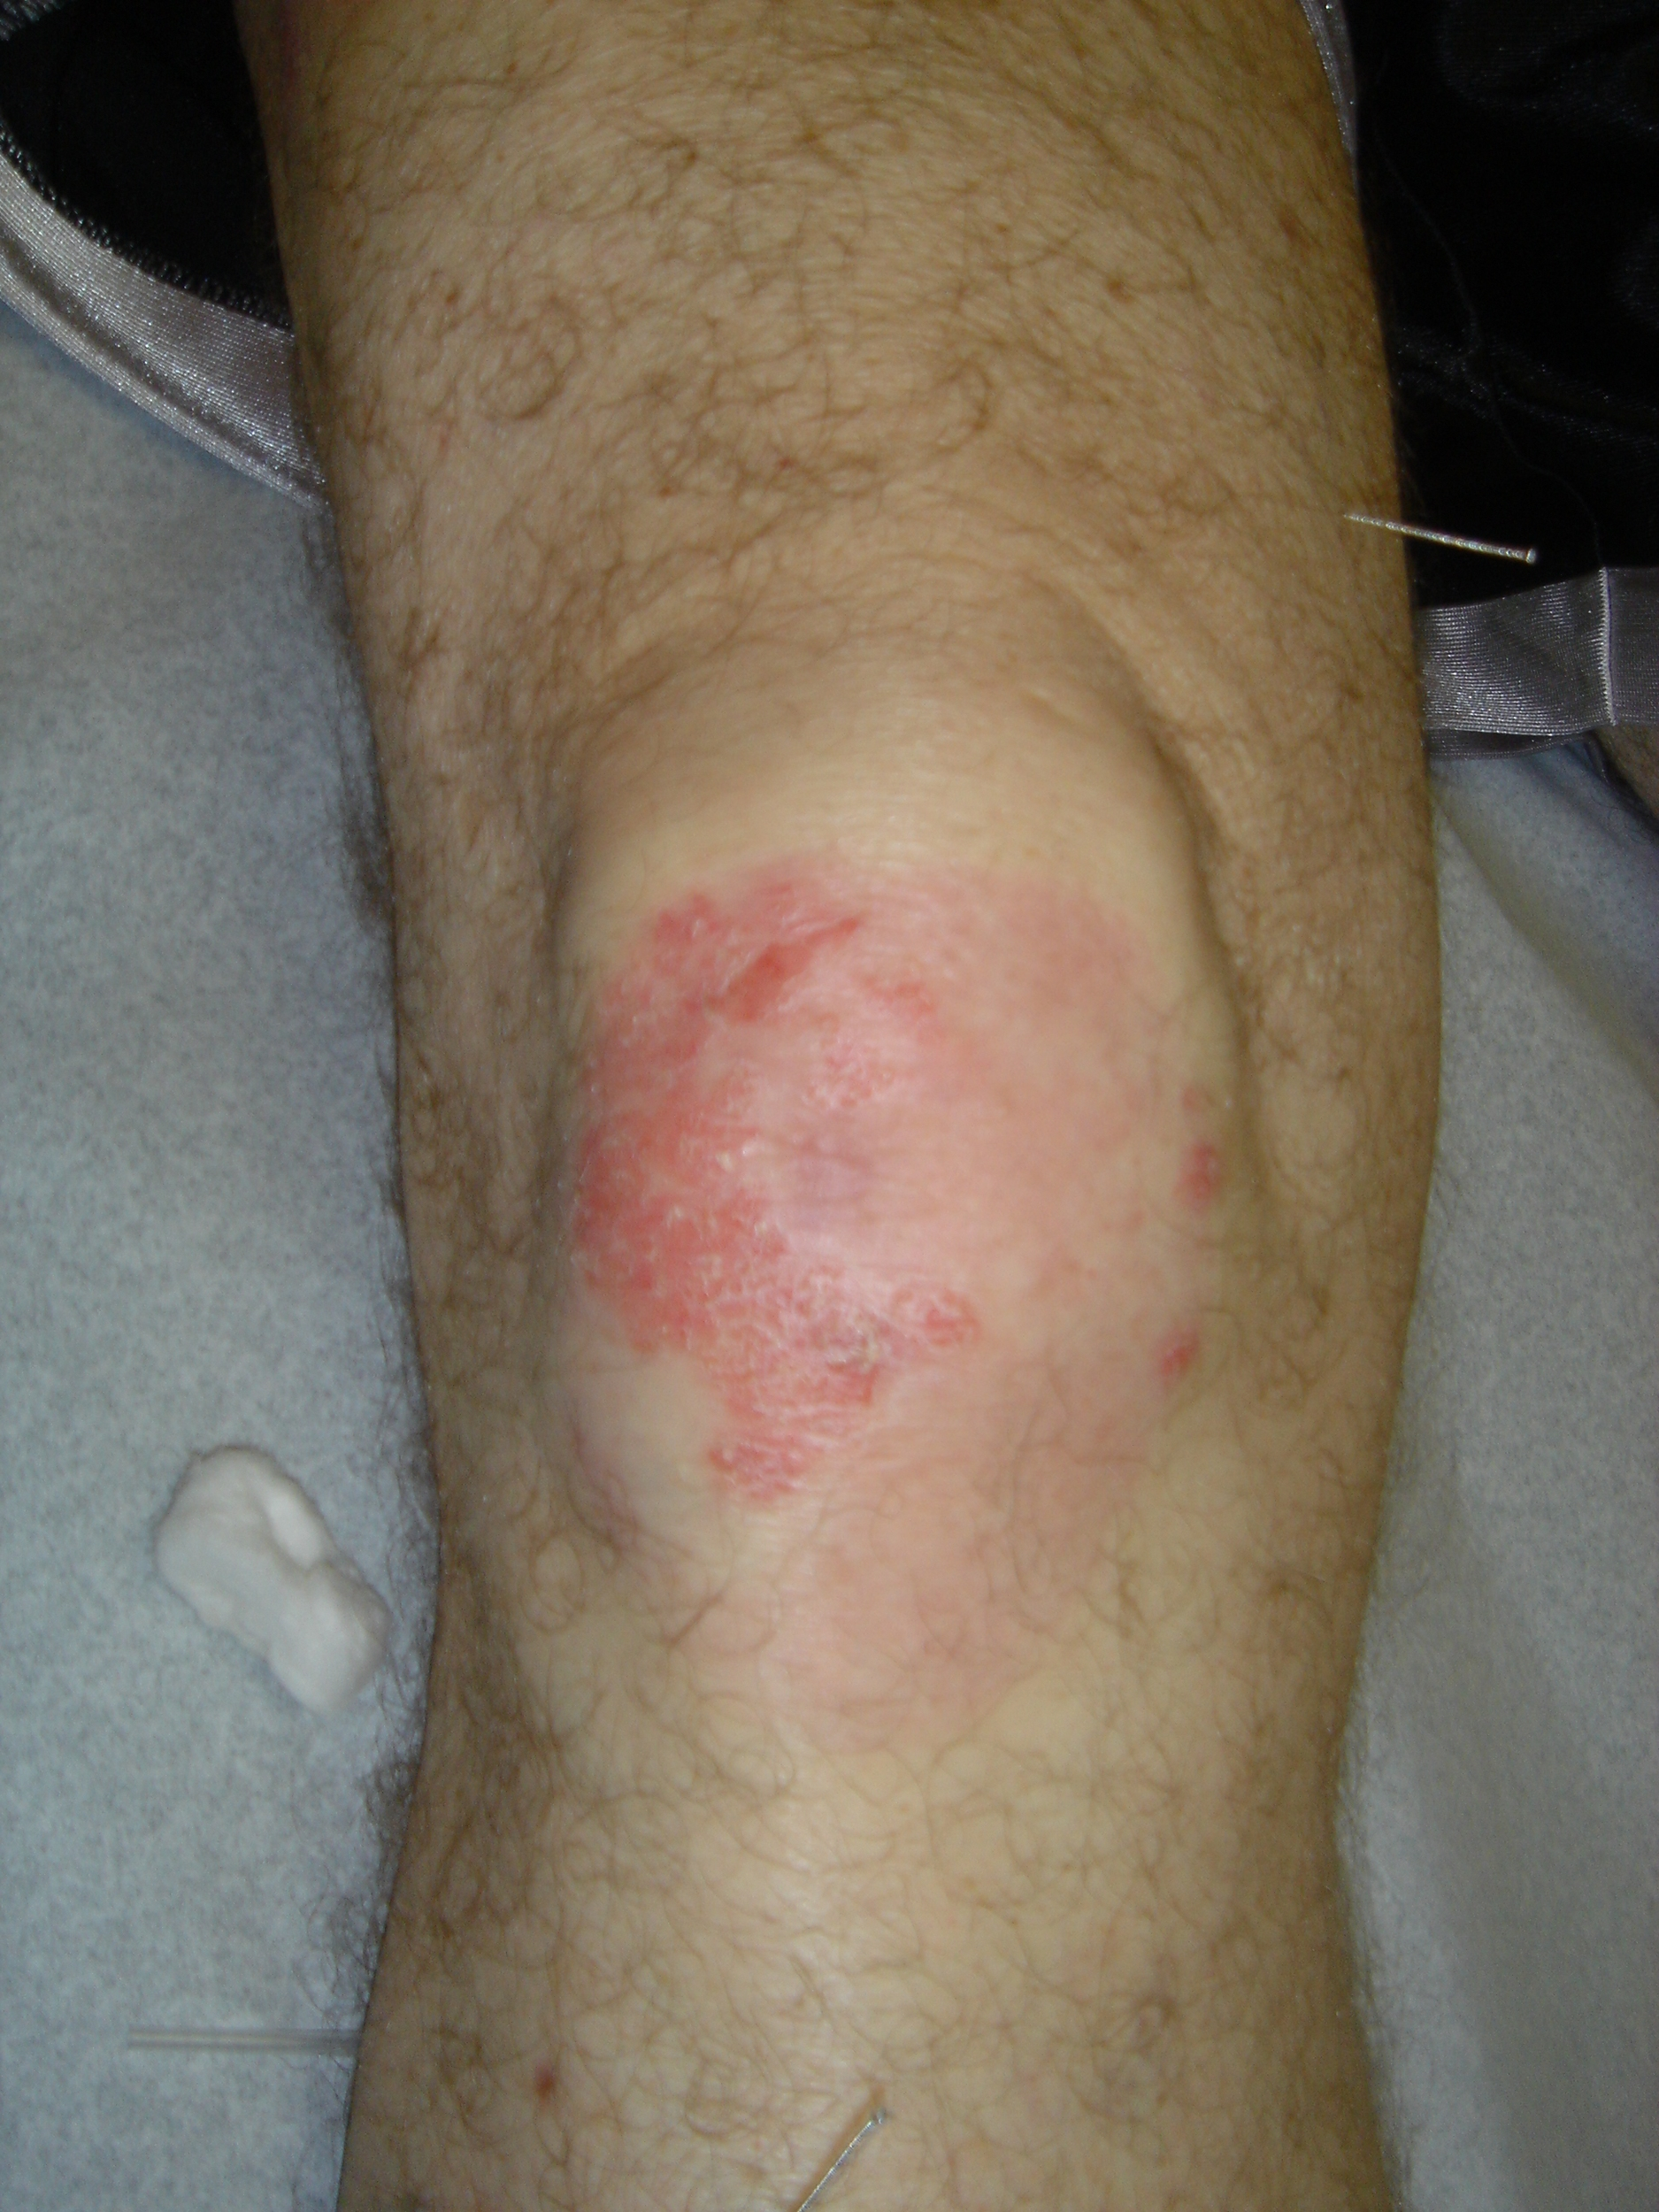 PSORIASIS RIGHT KNEE | MID-WAY THROUGH TREATMENTS